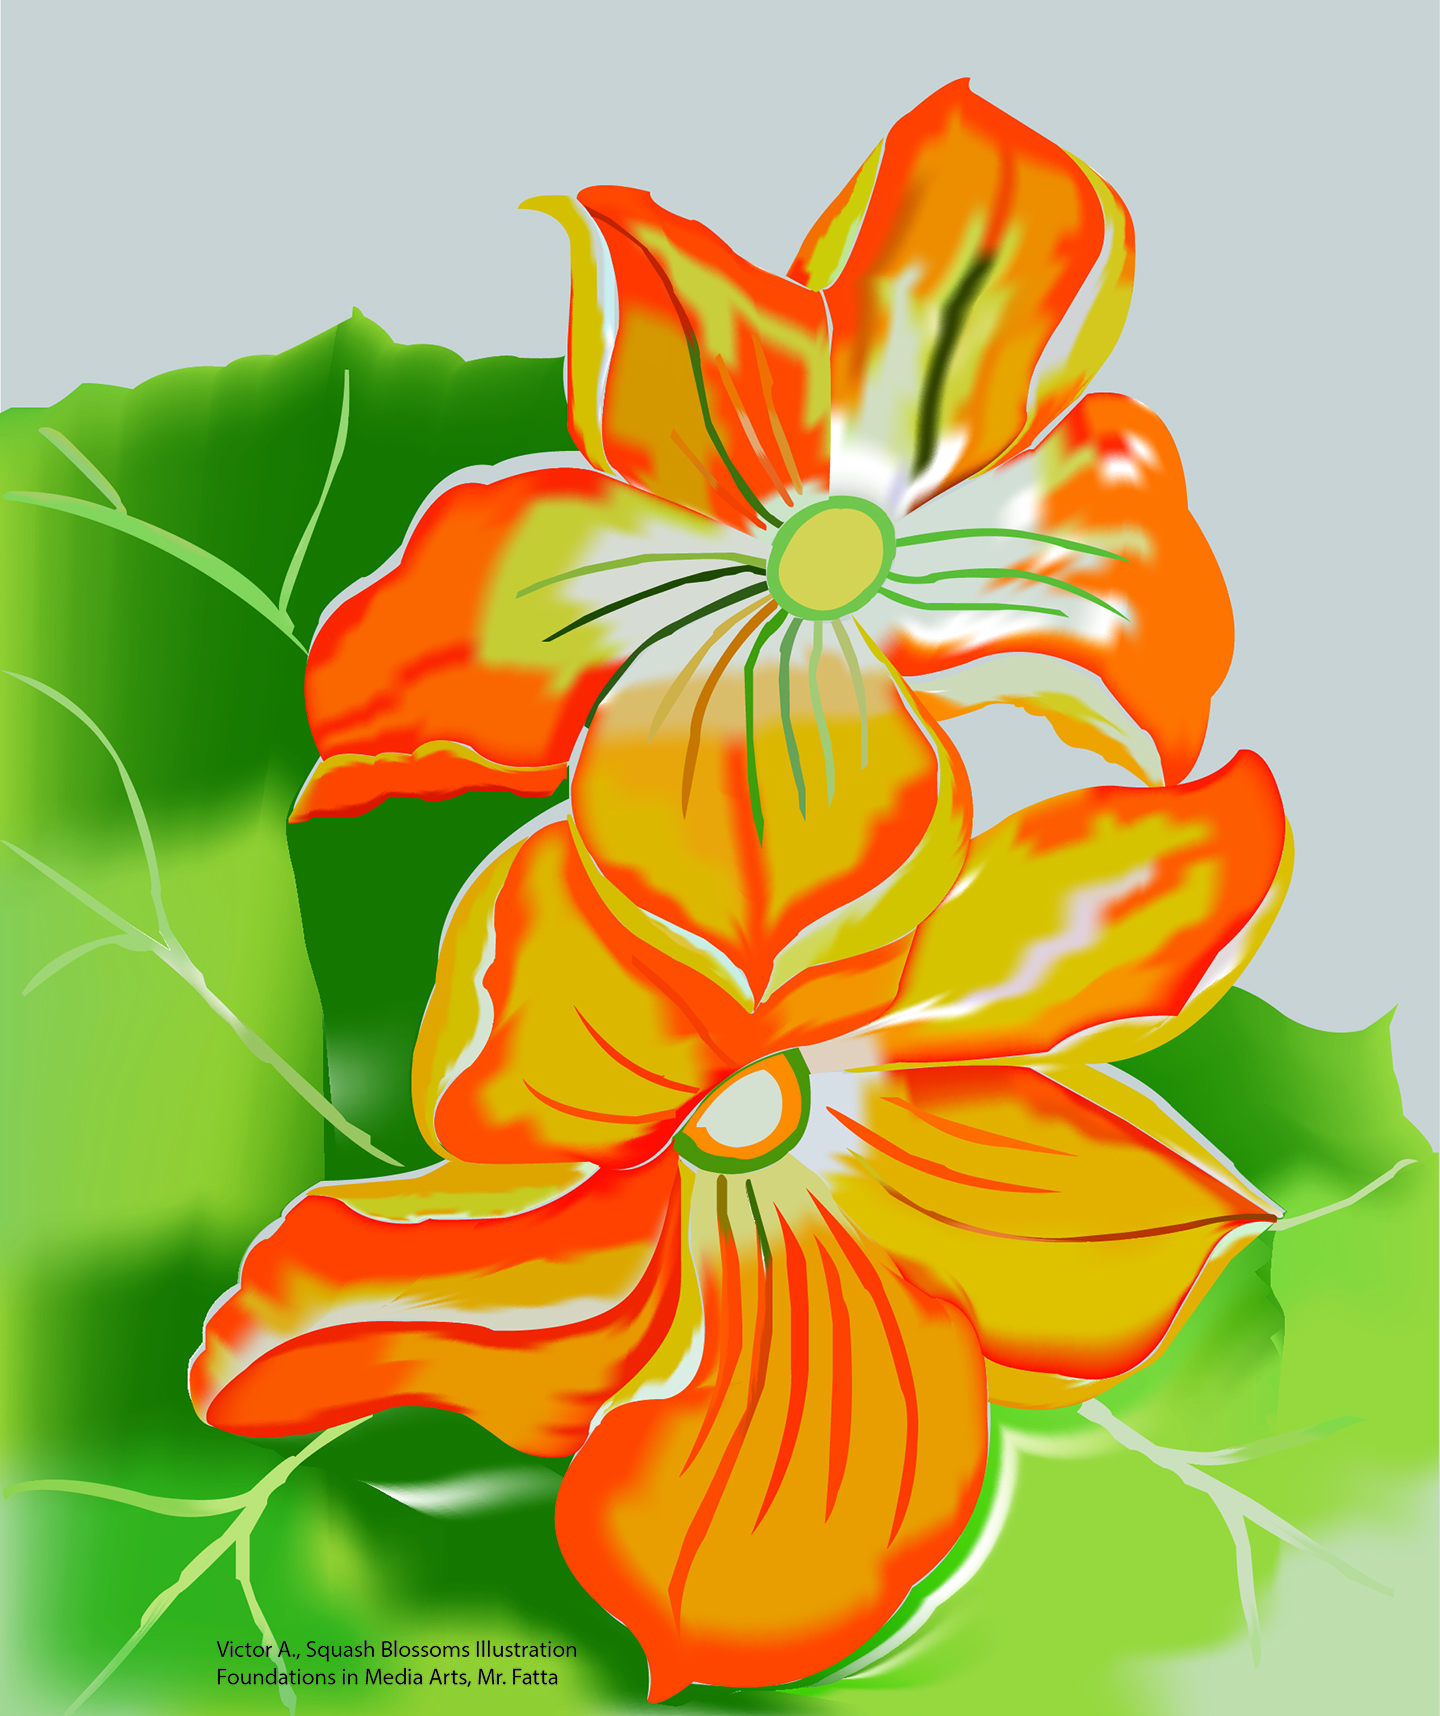 Flower_Orange_AquinoVictor